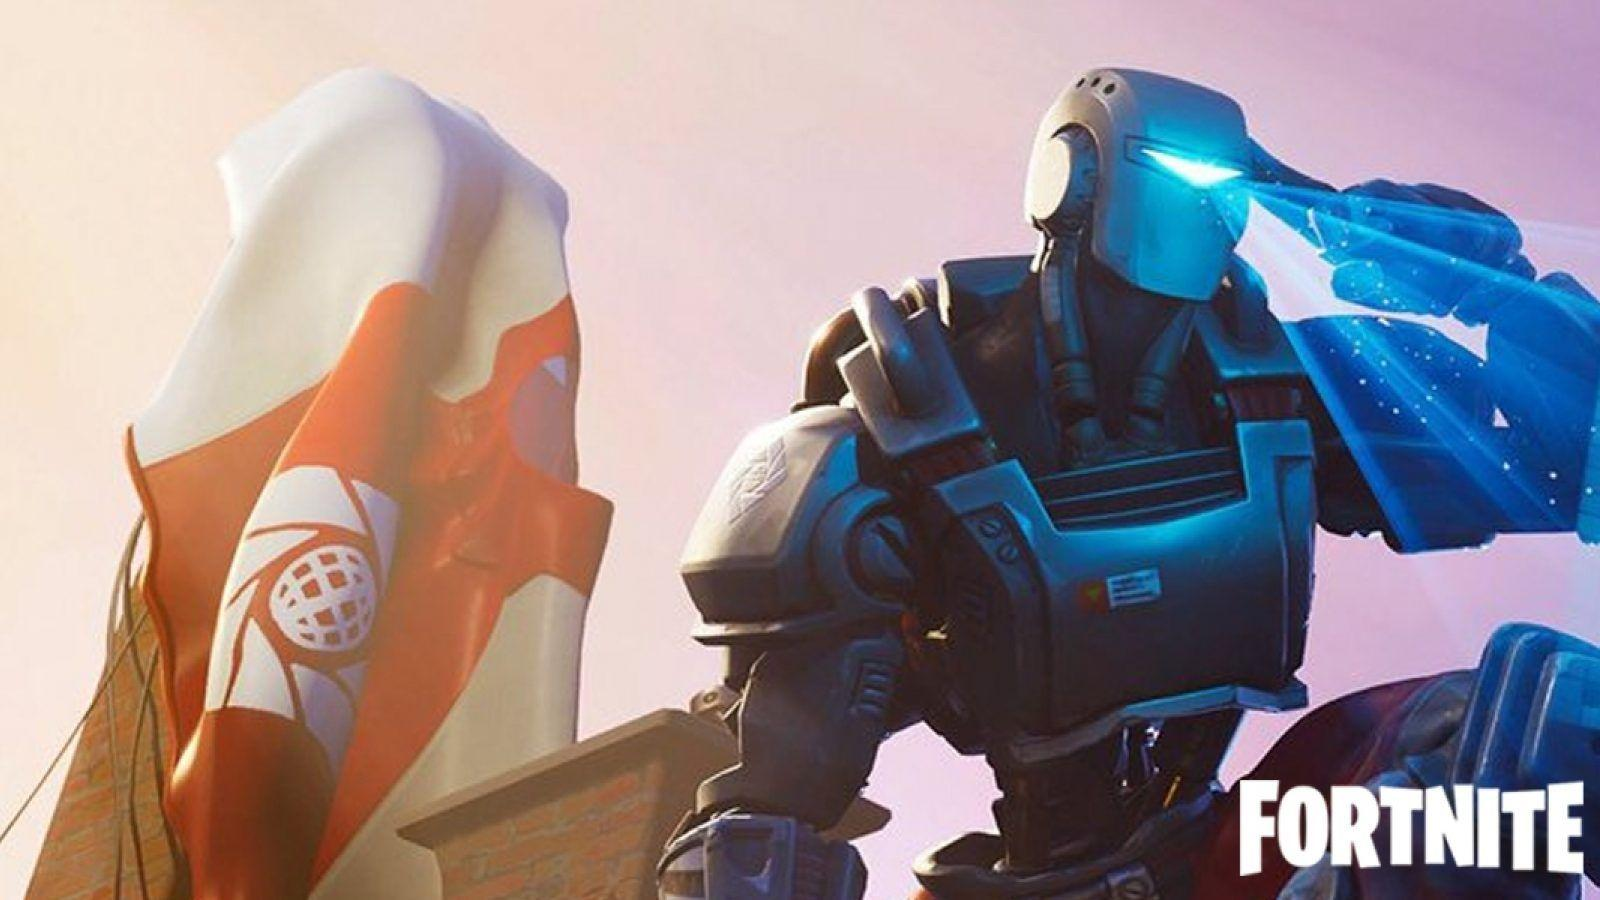 Fortnite Robots For Free To Play With For Kids Fortnite Robot Wallpapers Top Free Fortnite Robot Backgrounds Wallpaperaccess